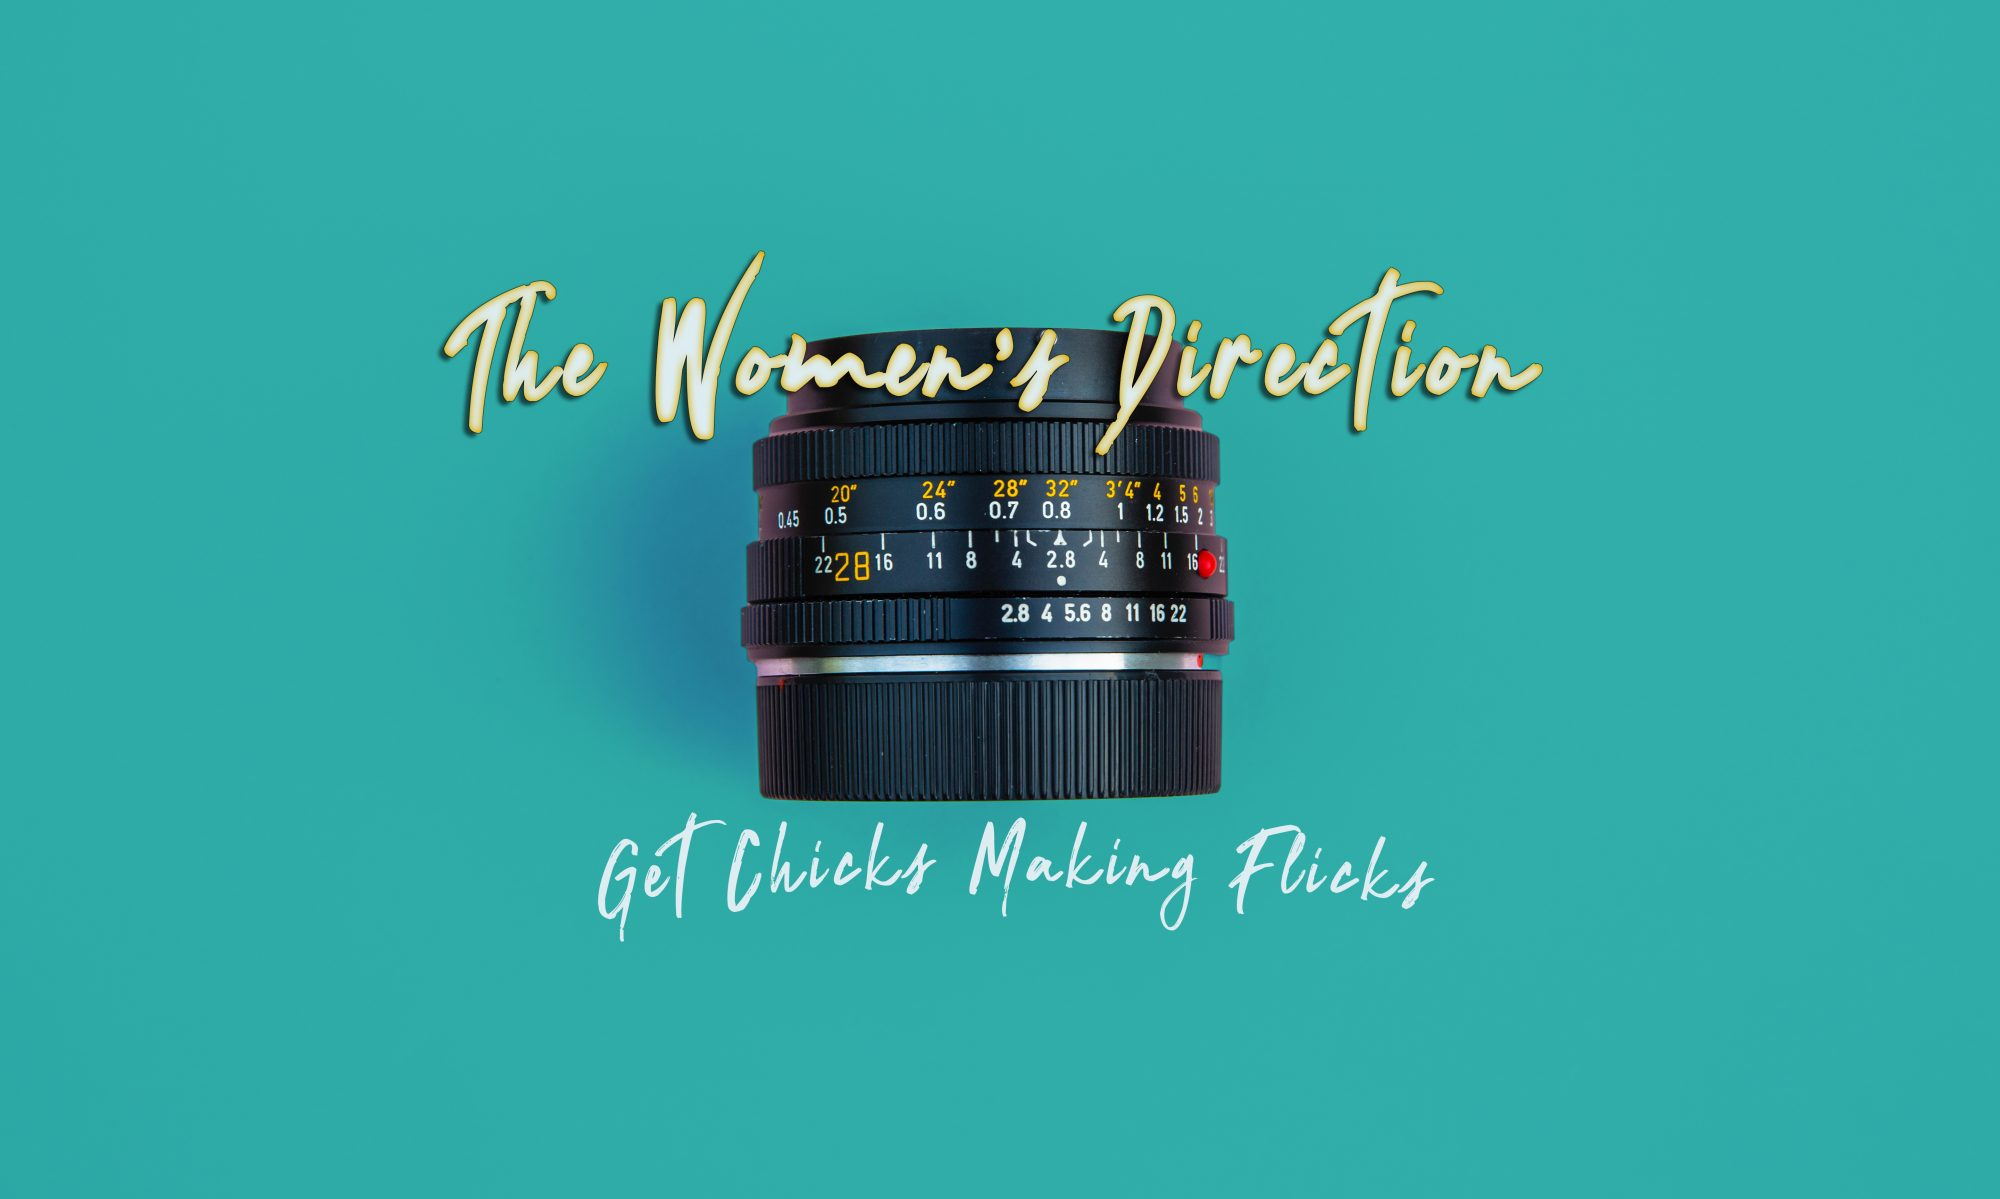 The Women's Direction